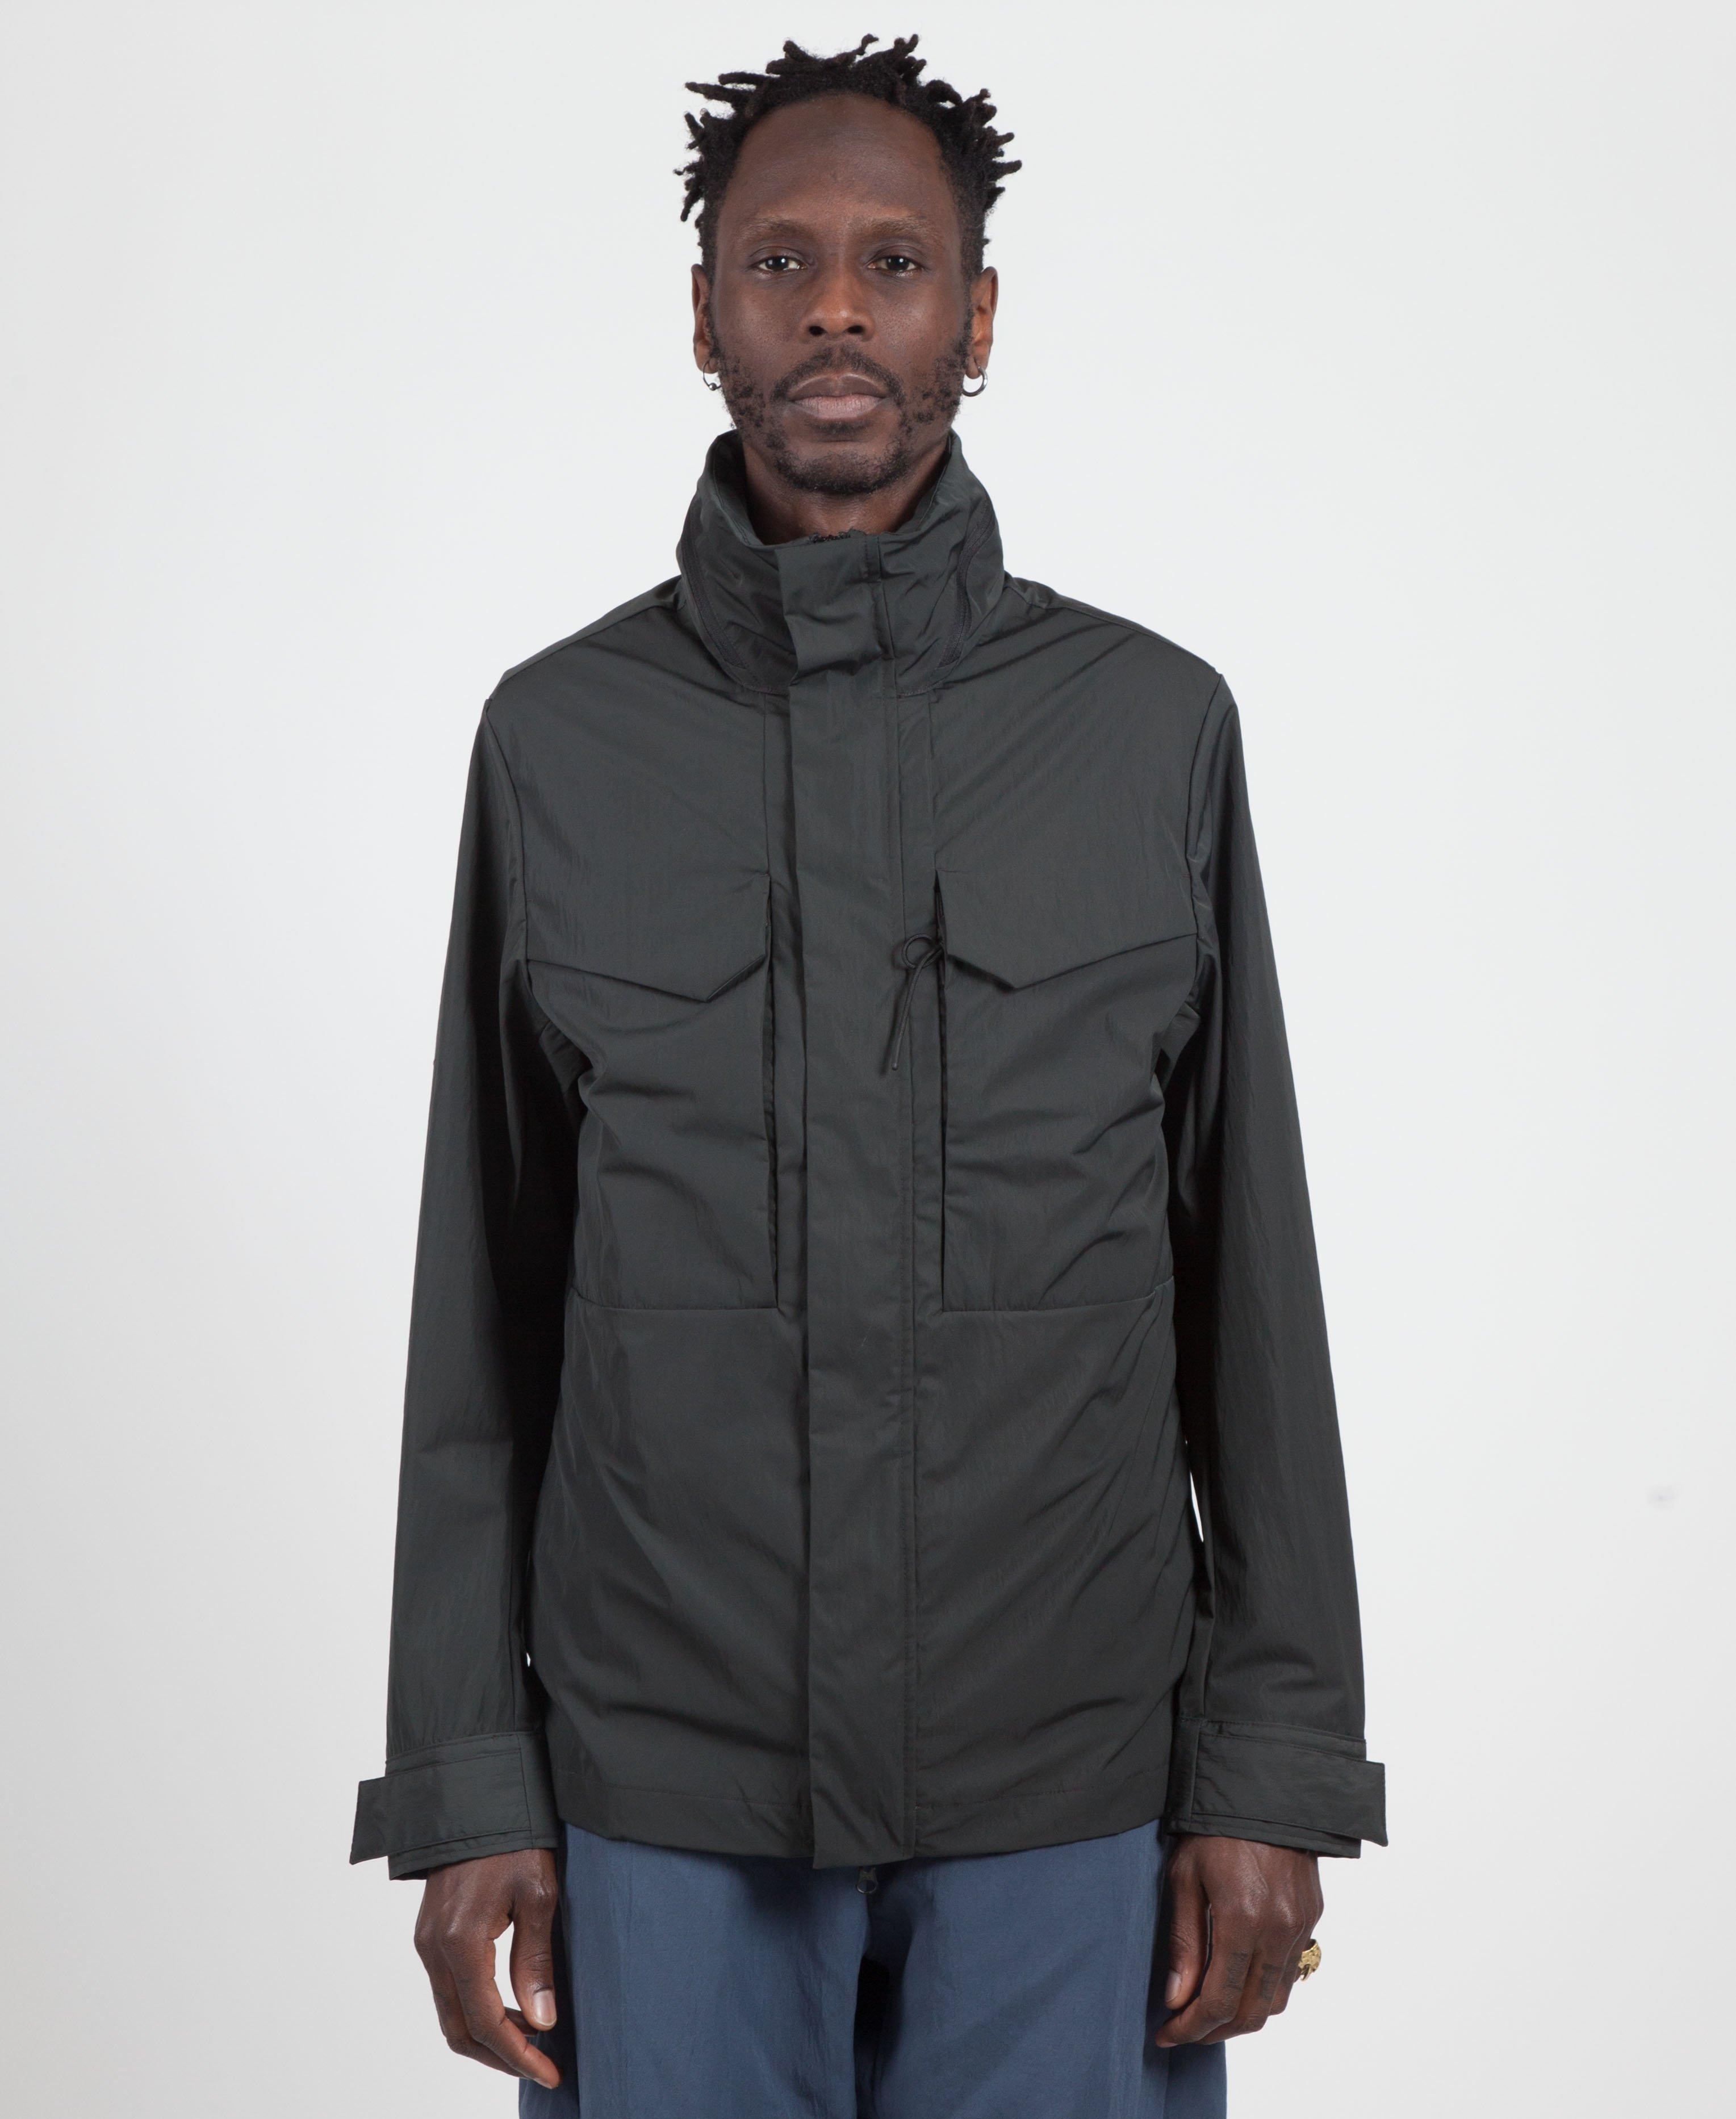 6b979c20df Lyst - Nike Anthracite 3 In 1 Tech Jacket in Gray for Men